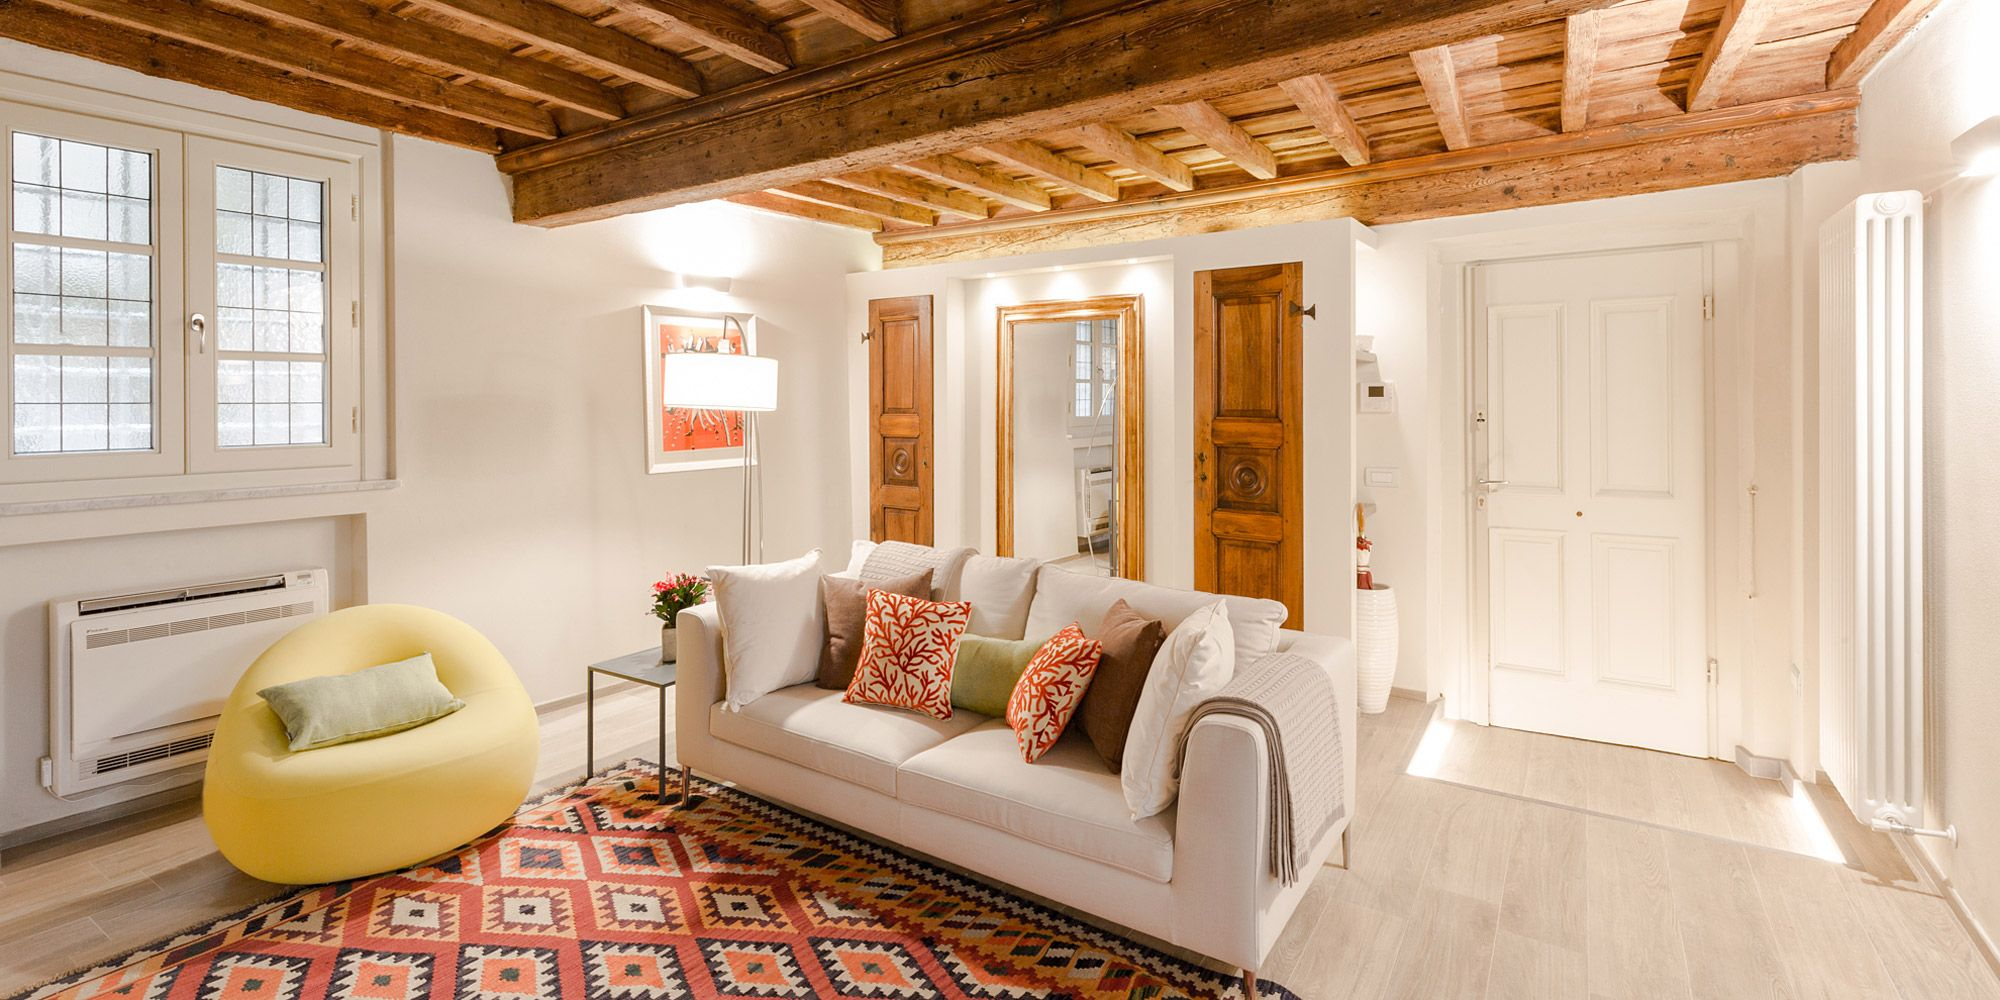 Boutique Hotels in Italy Small Hip and Luxury Hotels